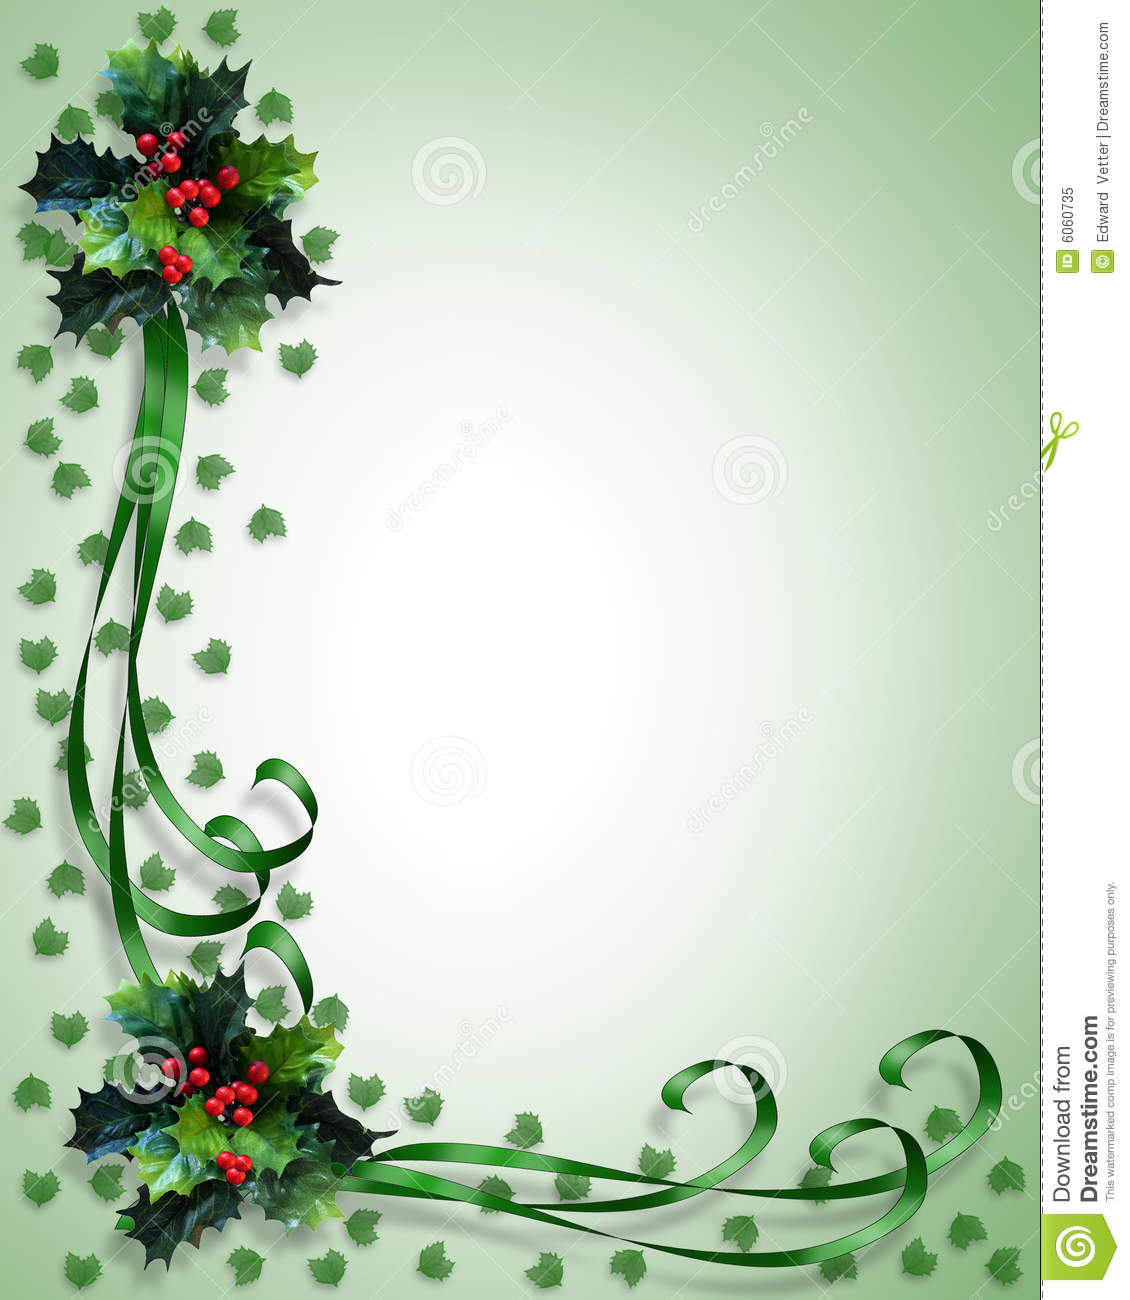 christmas border holly and ribbons - Christmas Borders Free